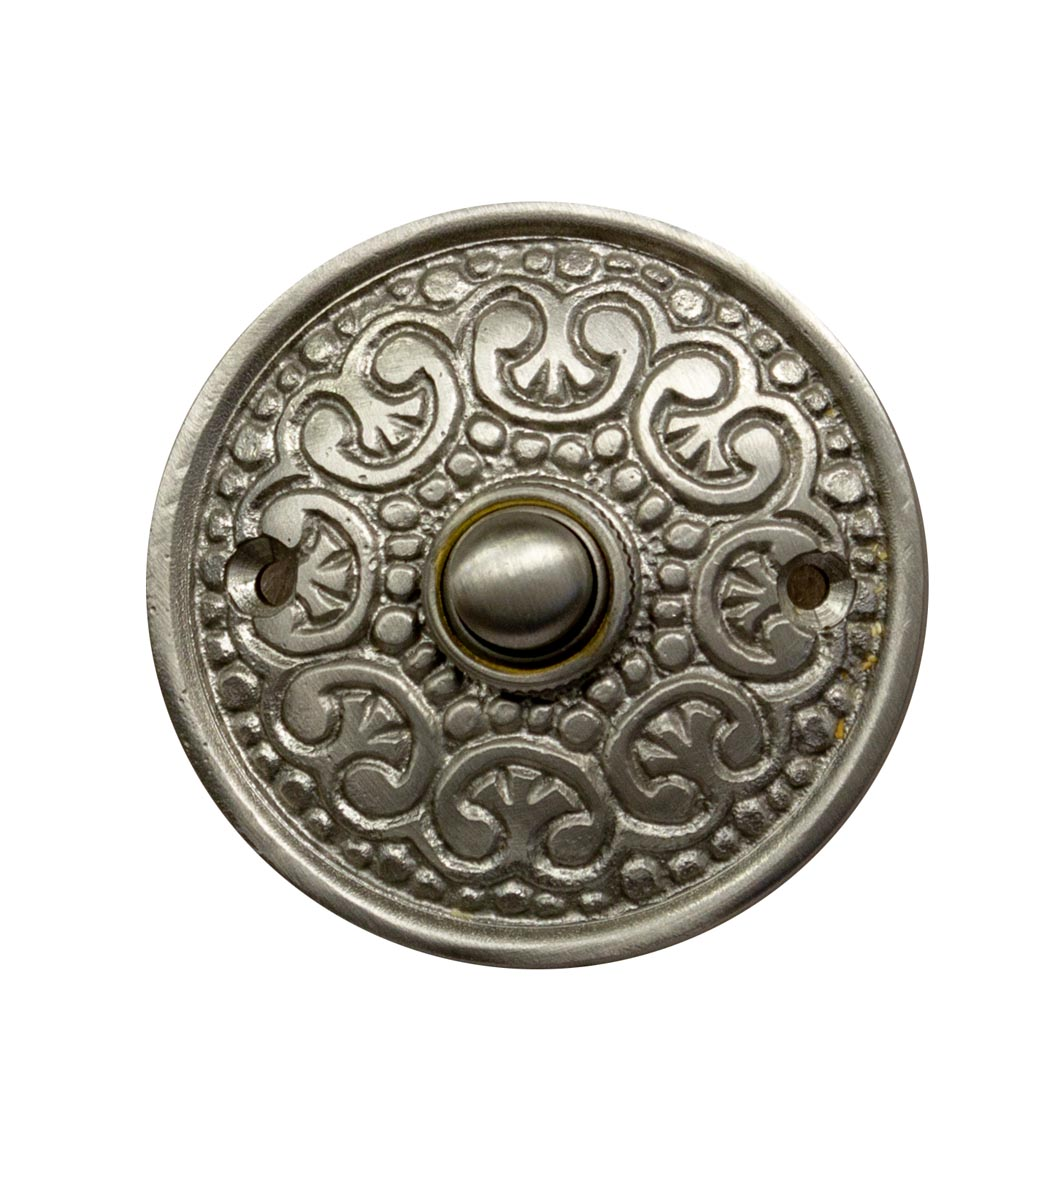 Round Ornate Doorbell